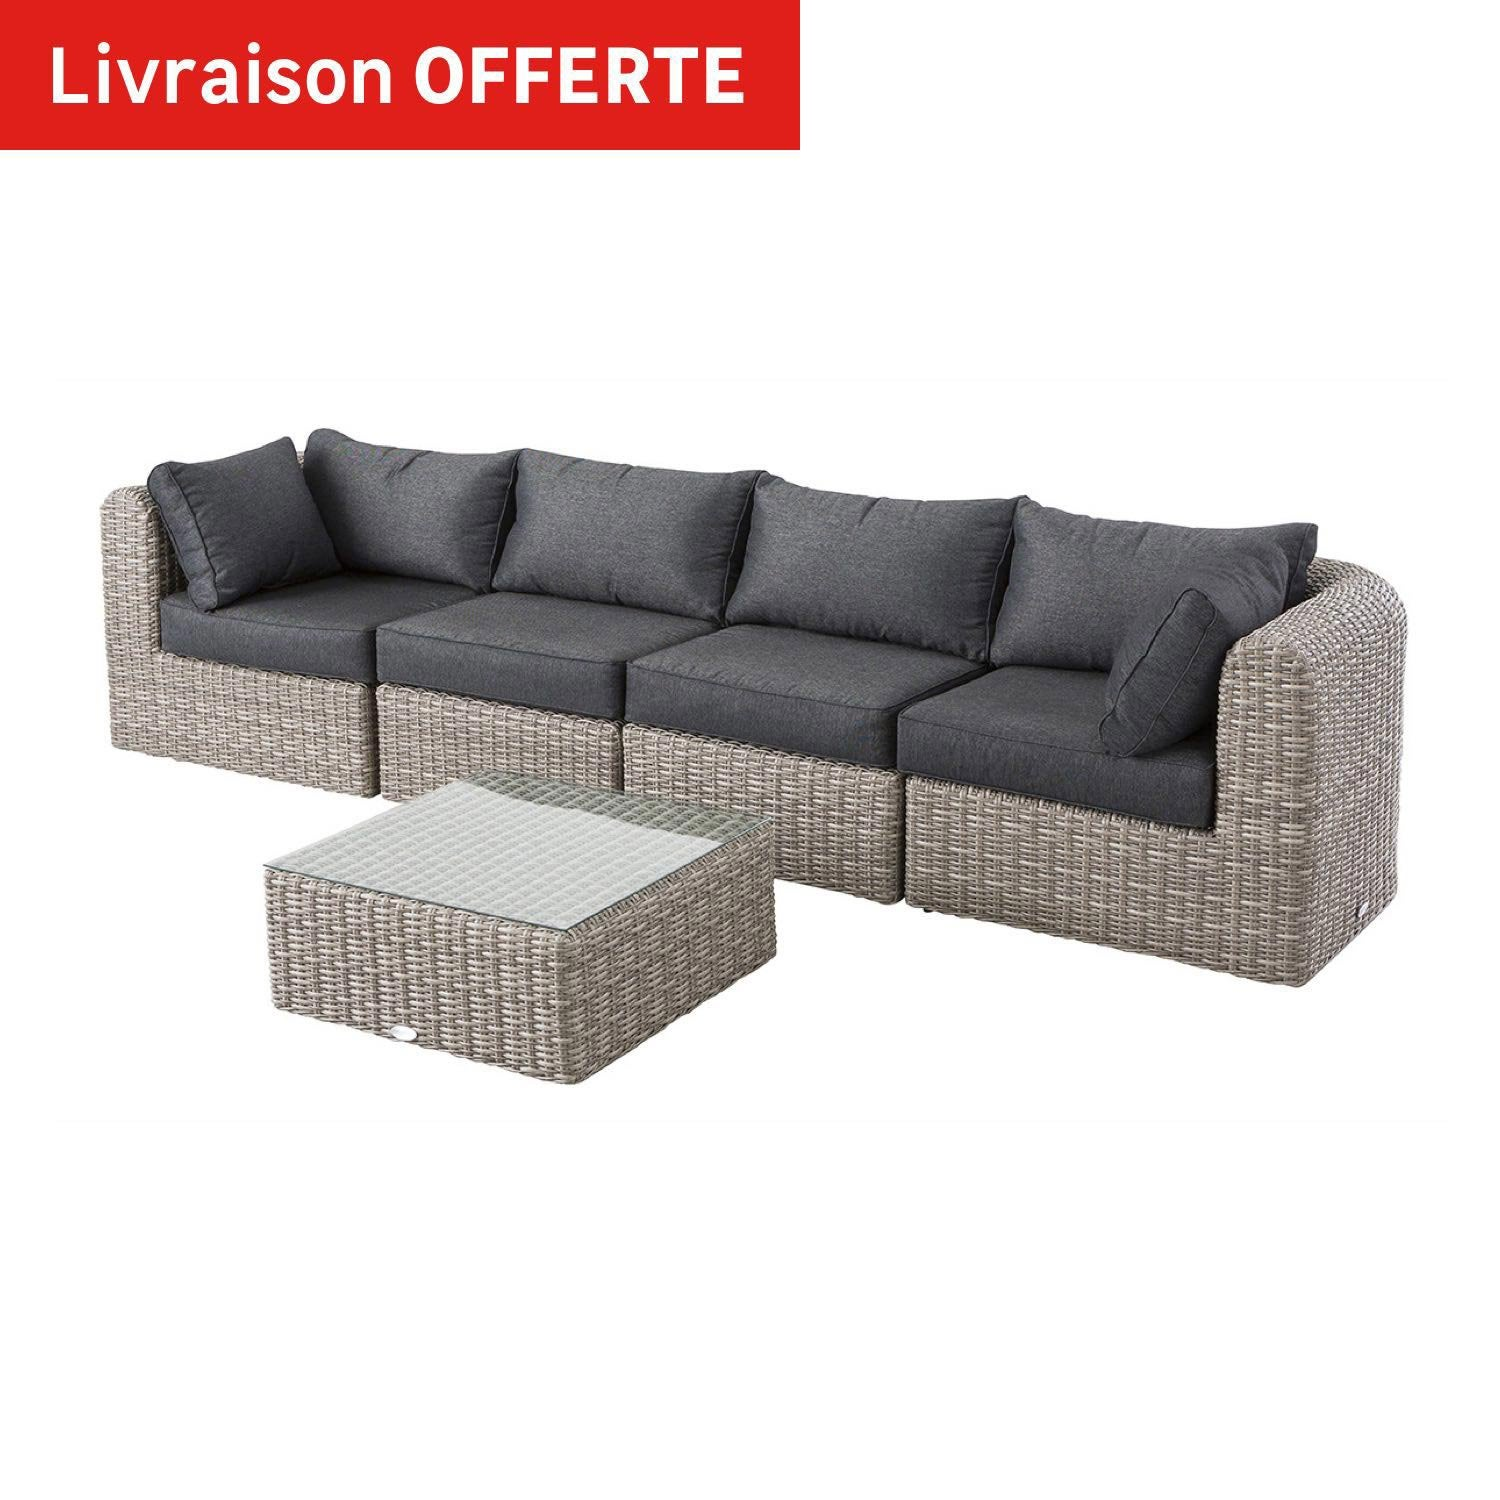 salon bas de jardin libertad taupe 5 personnes leroy merlin. Black Bedroom Furniture Sets. Home Design Ideas